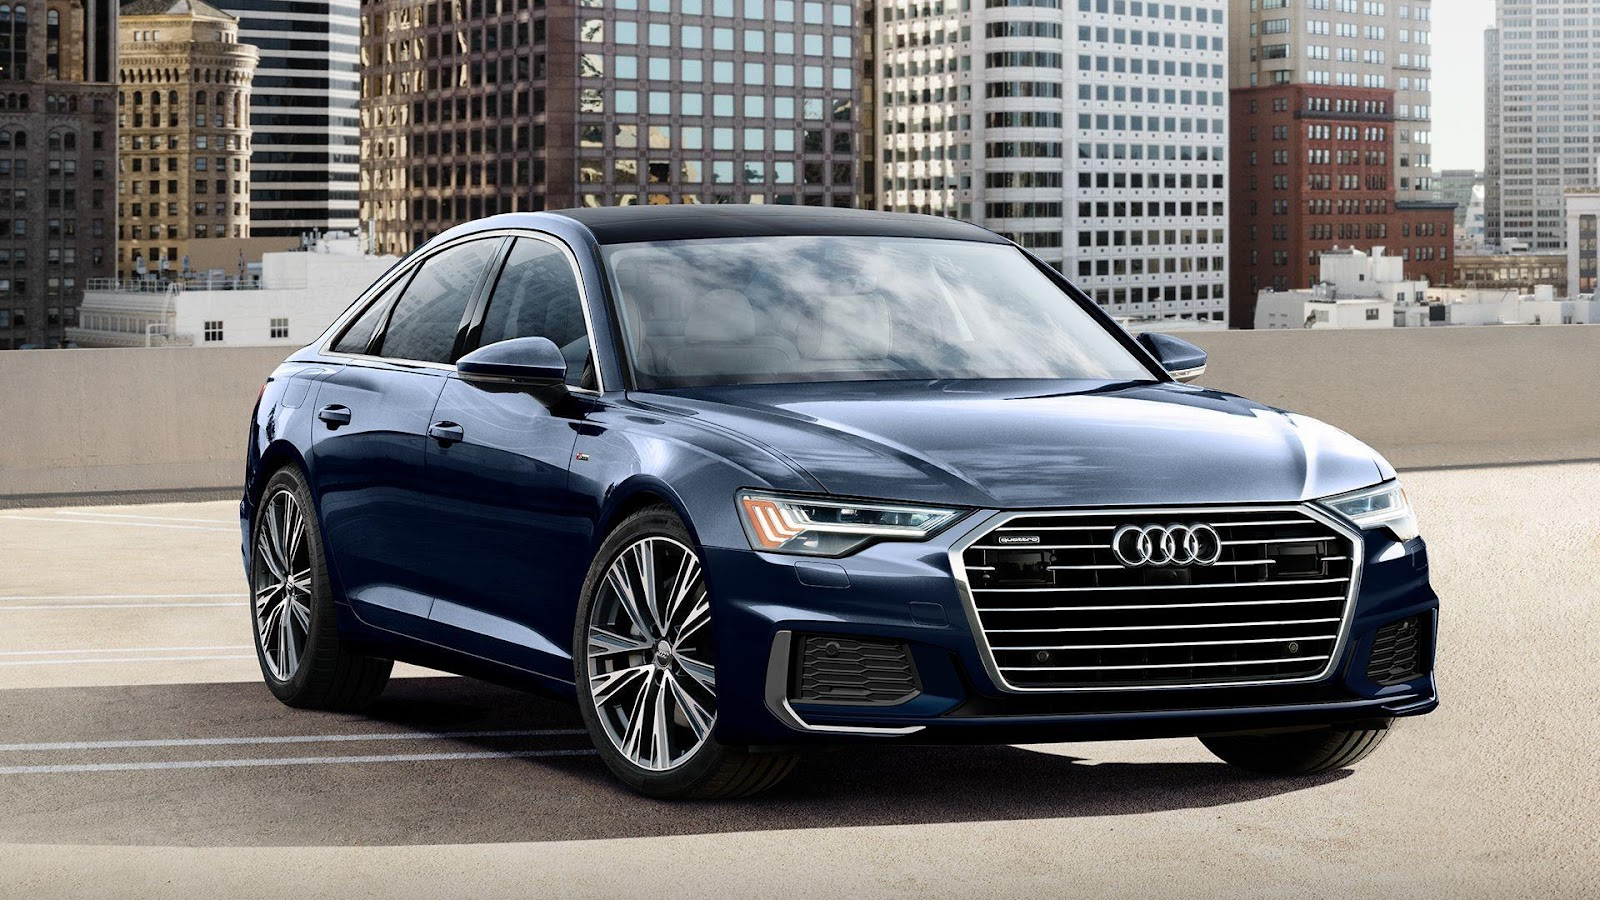 2021 Audi A6 Review, Pricing, and Specscaranddriver